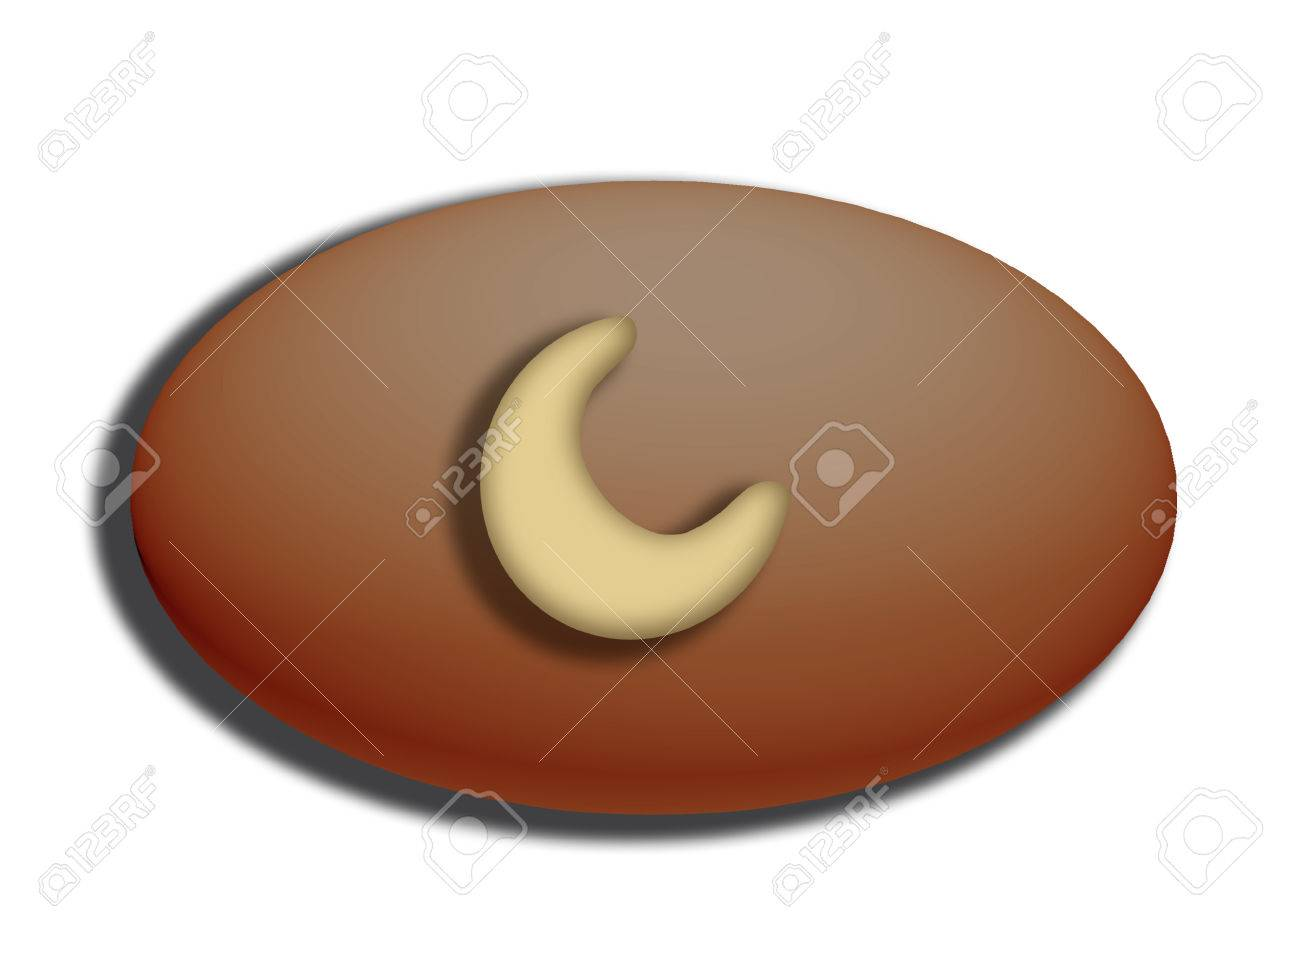 Dark chocolate oval candy with cashew nut on top Stock Photo - 25151898